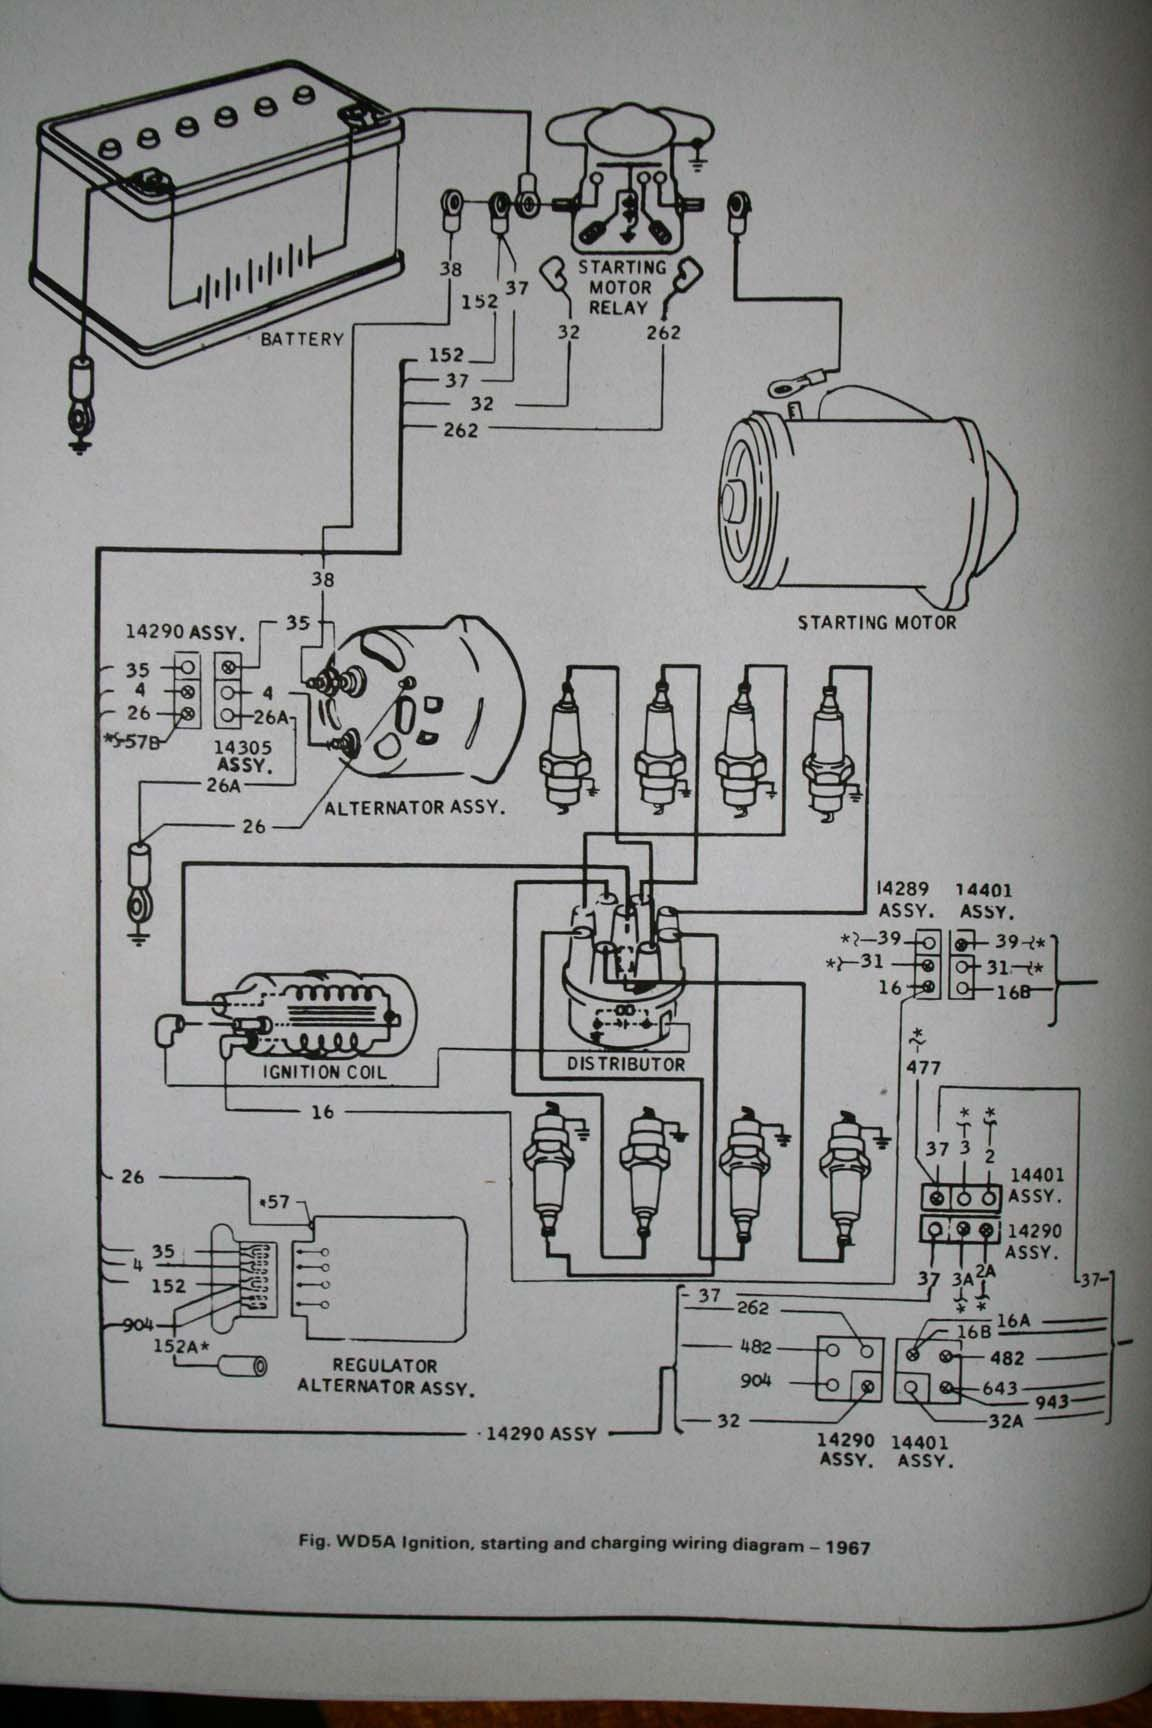 Ford Voltage Regulator Wiring Diagram 37 Images Xf Falcon Alternator 161544d1344372414 Alt 67 Coupe Have Wire Im Not Sure What Do 1967 Starting